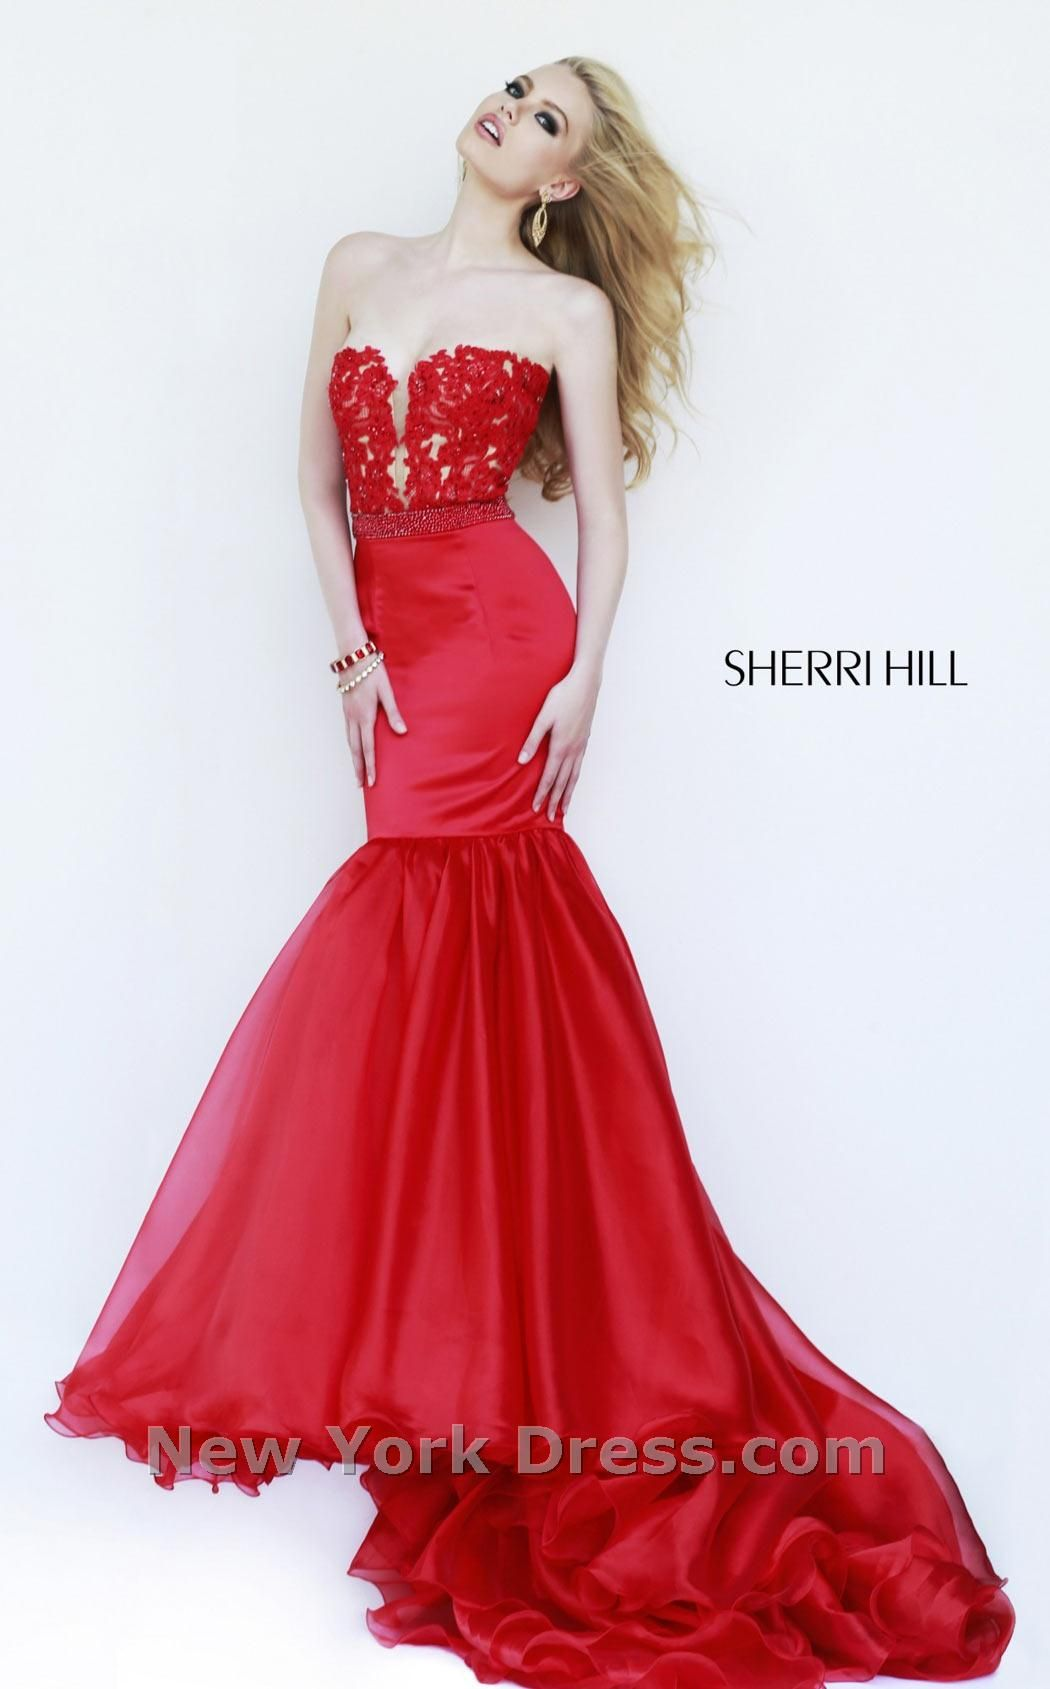 Prom Dresses, Celebrity Dresses, Sexy Evening Gowns: Strapless Mermaid Gown  32107 by Sherri Hill